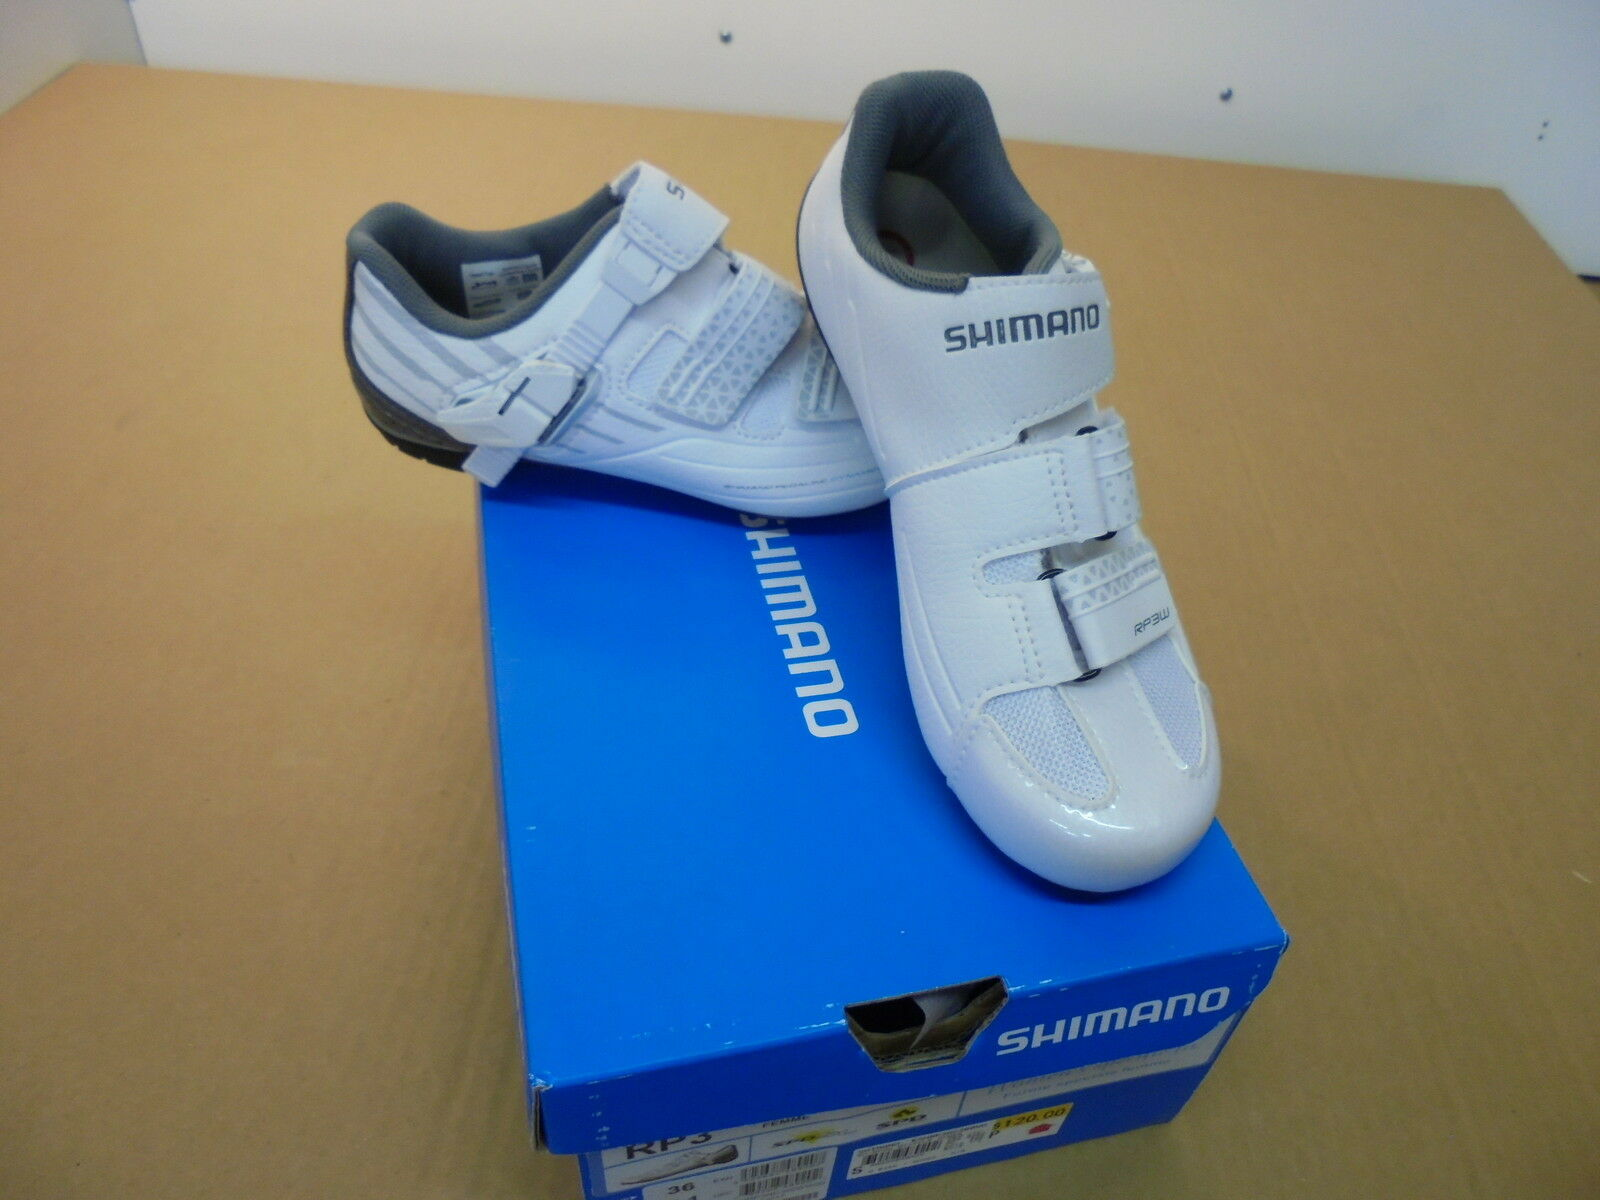 NEW SHIMANO RP3 SPD CYCLING SHOES   WOMENS      US 5.1  store sale outlet